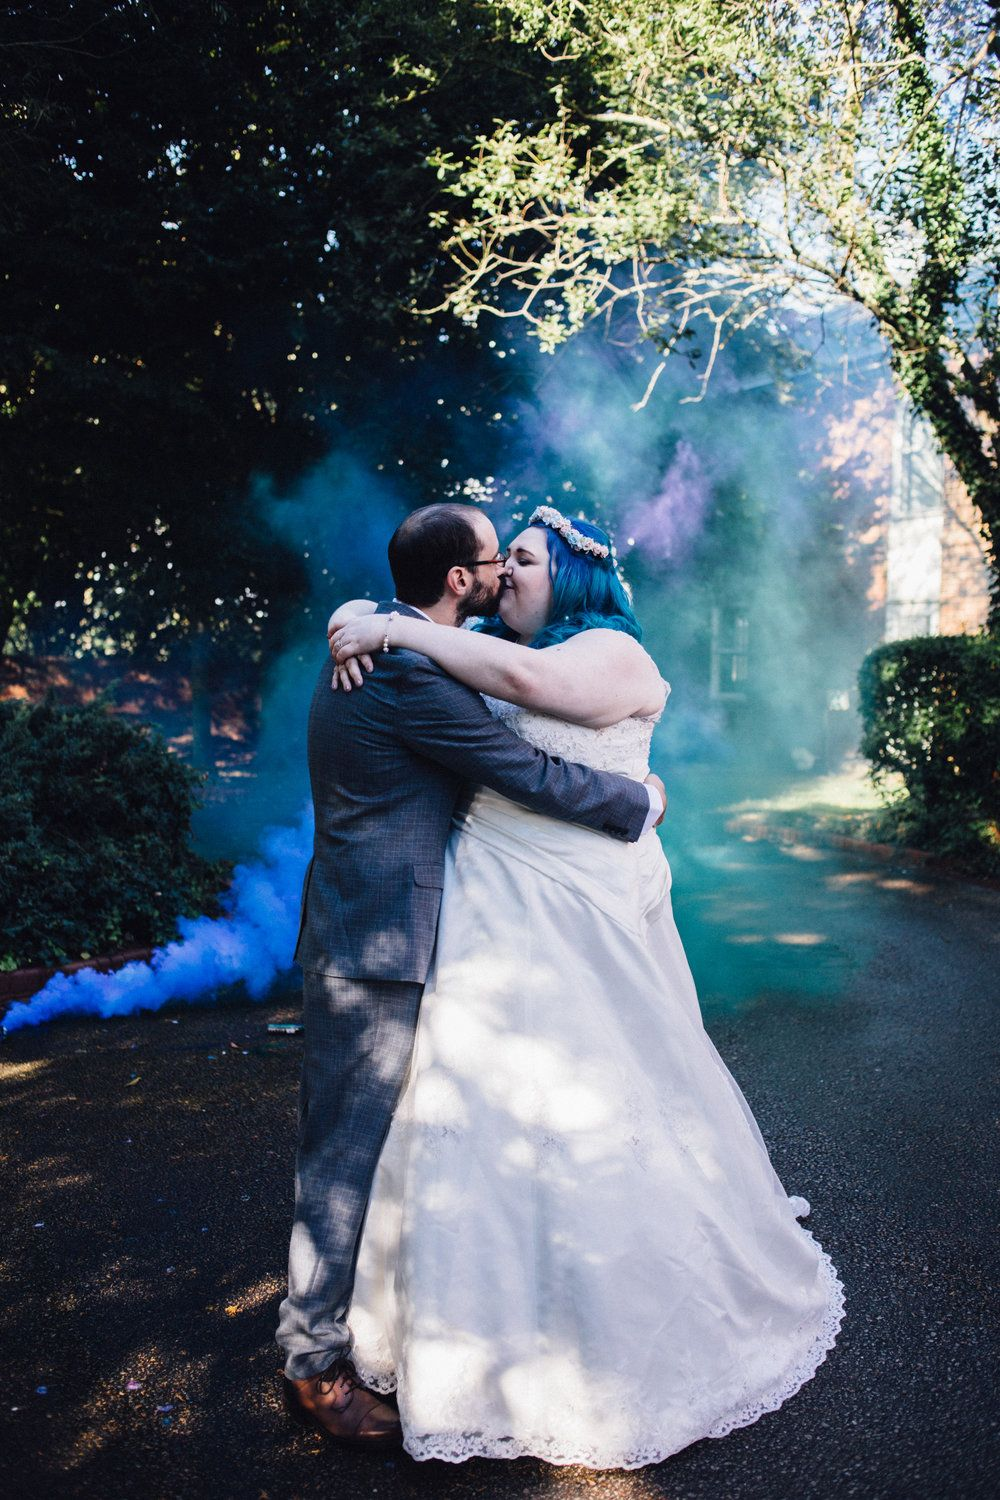 Smoke Wedding Photo Ideas Alternative Photography Chloe Lee